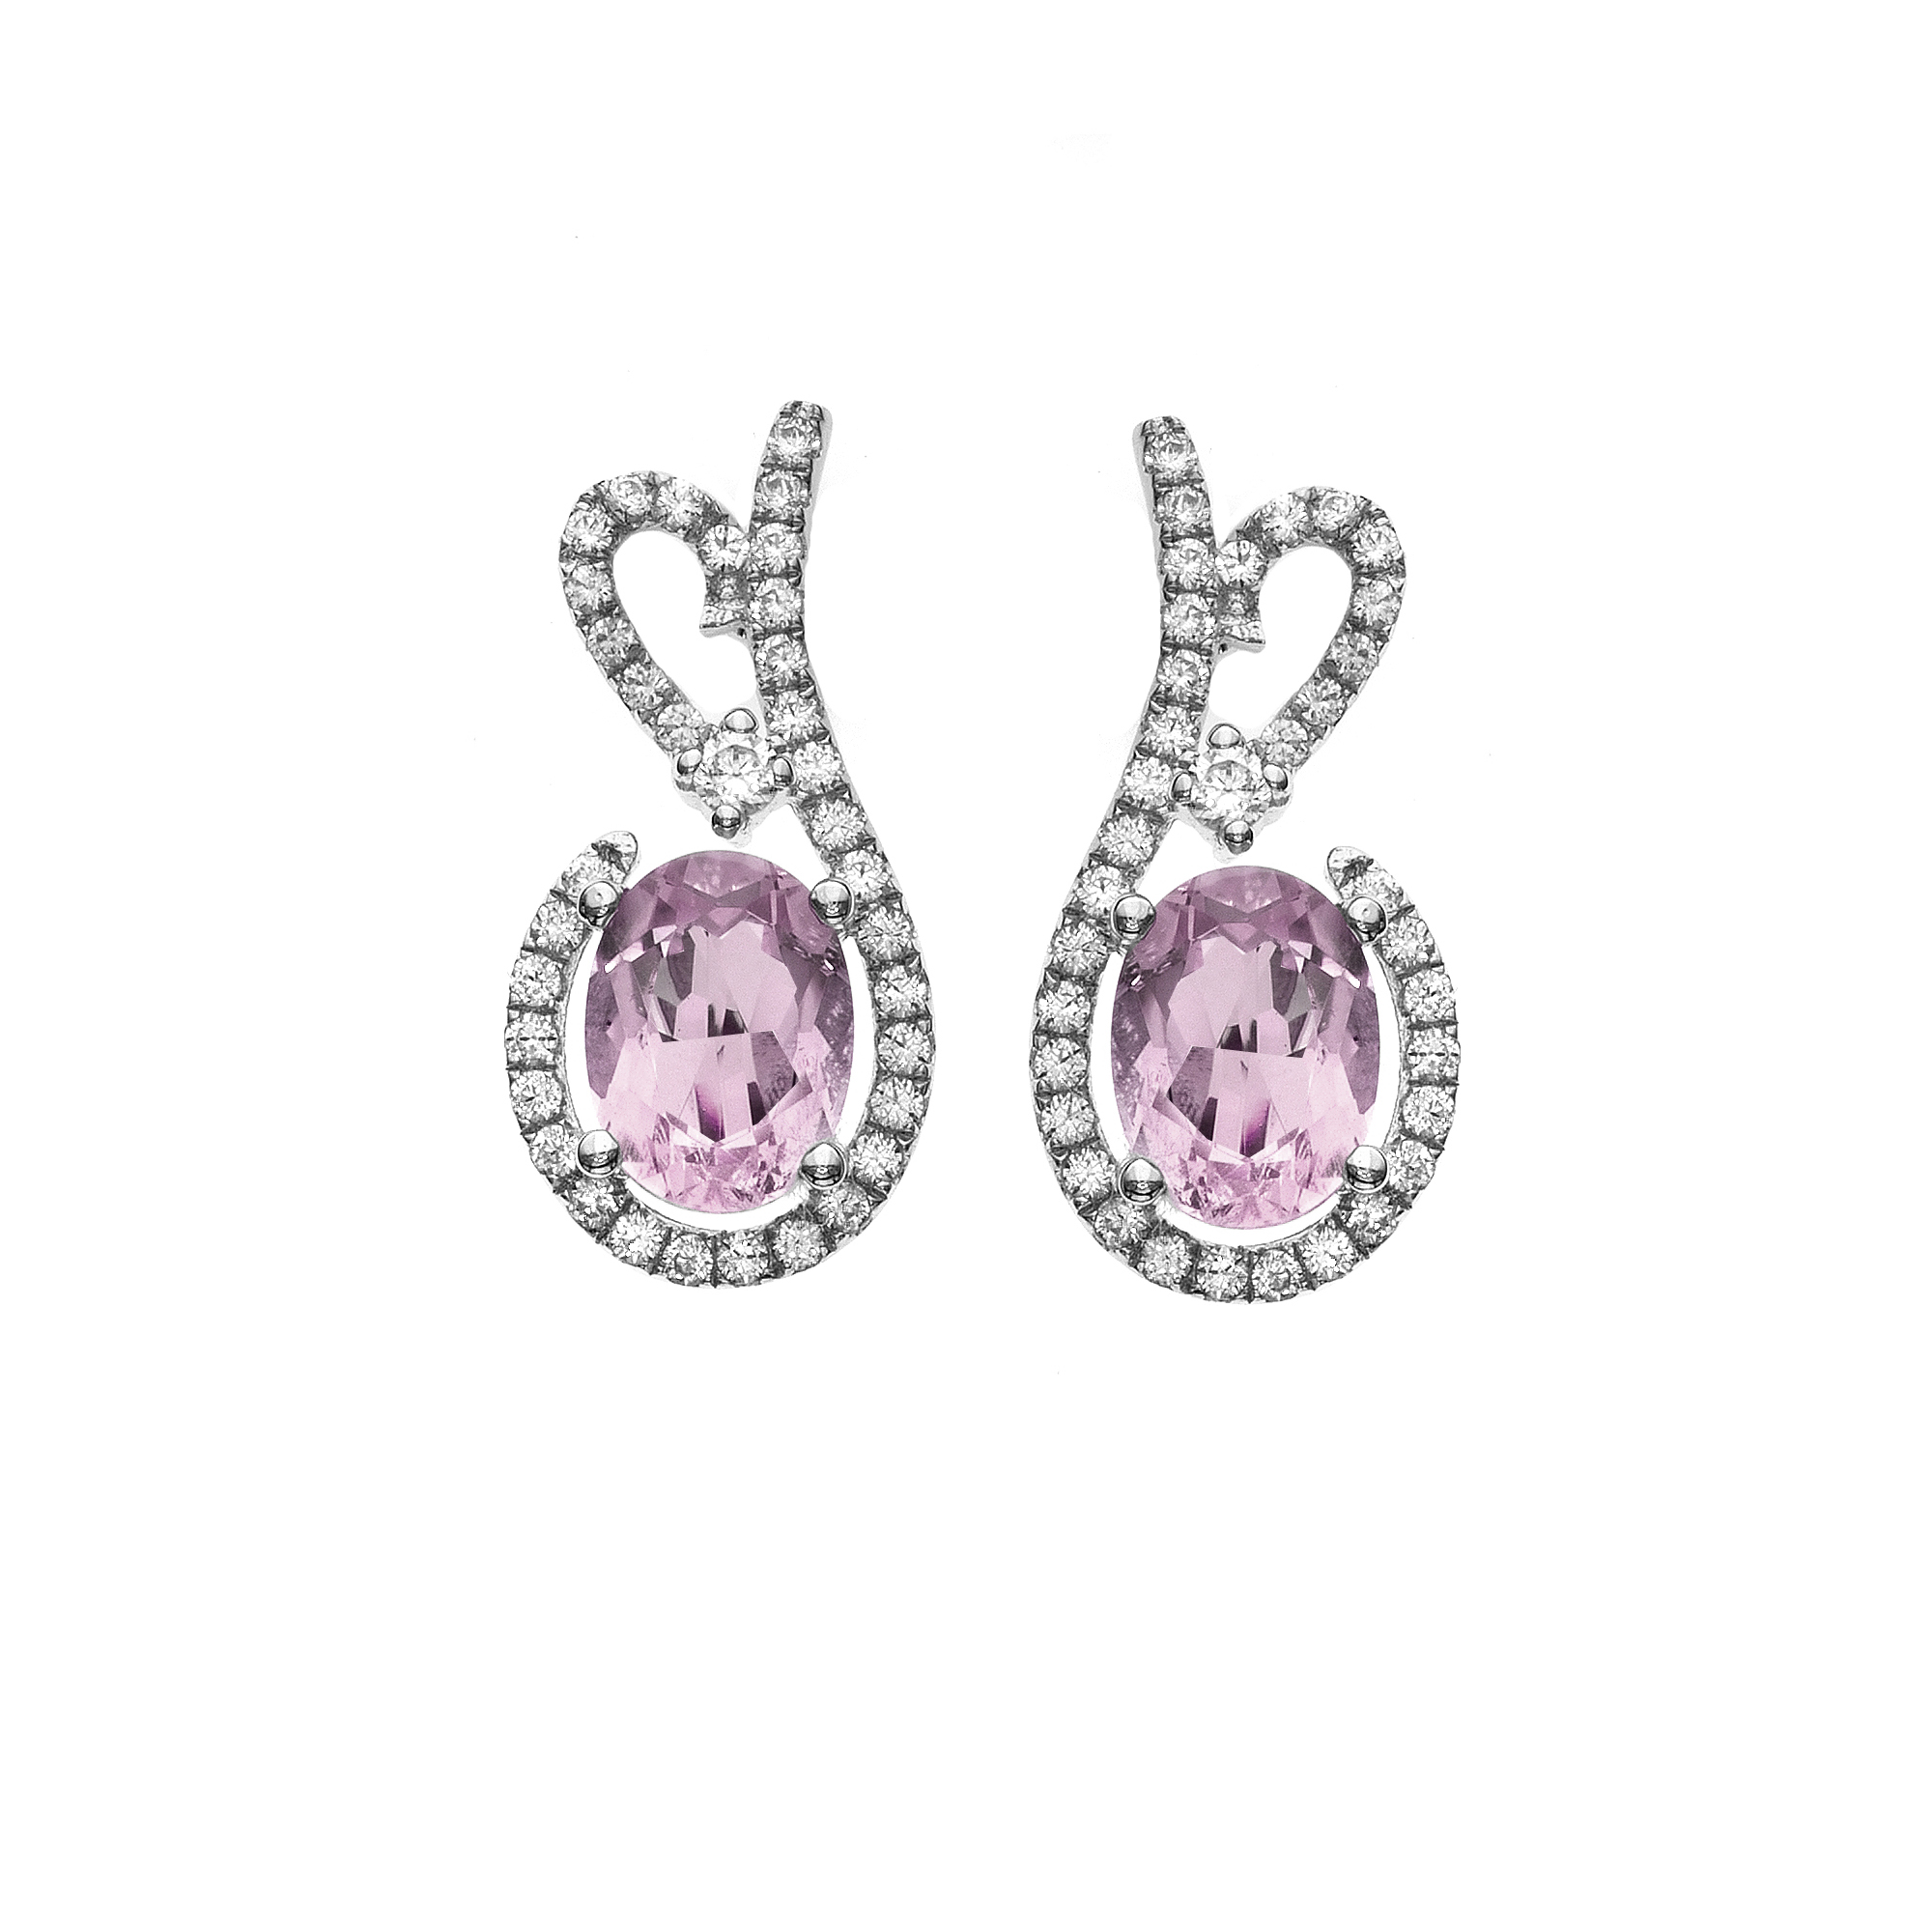 Platinum-Plated-Sterling-Silver-Floral-Lace-Cut-Gemstone-Pave-CZ-Earring